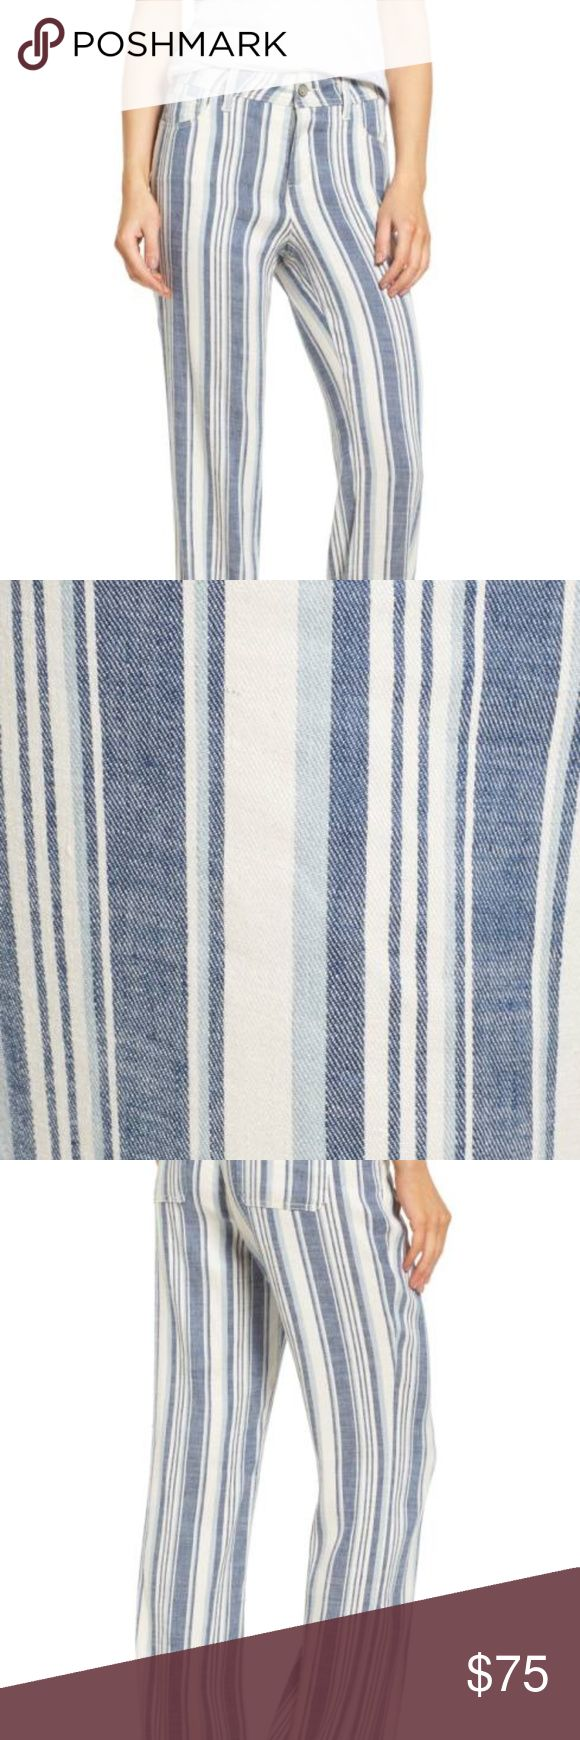 NWT  NYDJ Wylie Stripe Linen Blend Trousers 16 Wide-cut legs and variegated vertical stripes add up to figure-elongating style for five-pocket pants fashioned from a stretch-woven linen blend. Of course, NYDJ's exclusive lift-tuck technology helps to flatten the tummy and lift the rear to further the flattery. Zip fly with button closure Five-pocket style 56% linen, 42% viscose, 2% elastane Machine wash, line dry Imported Point of View Item #5346364 NYDJ Pants Trousers